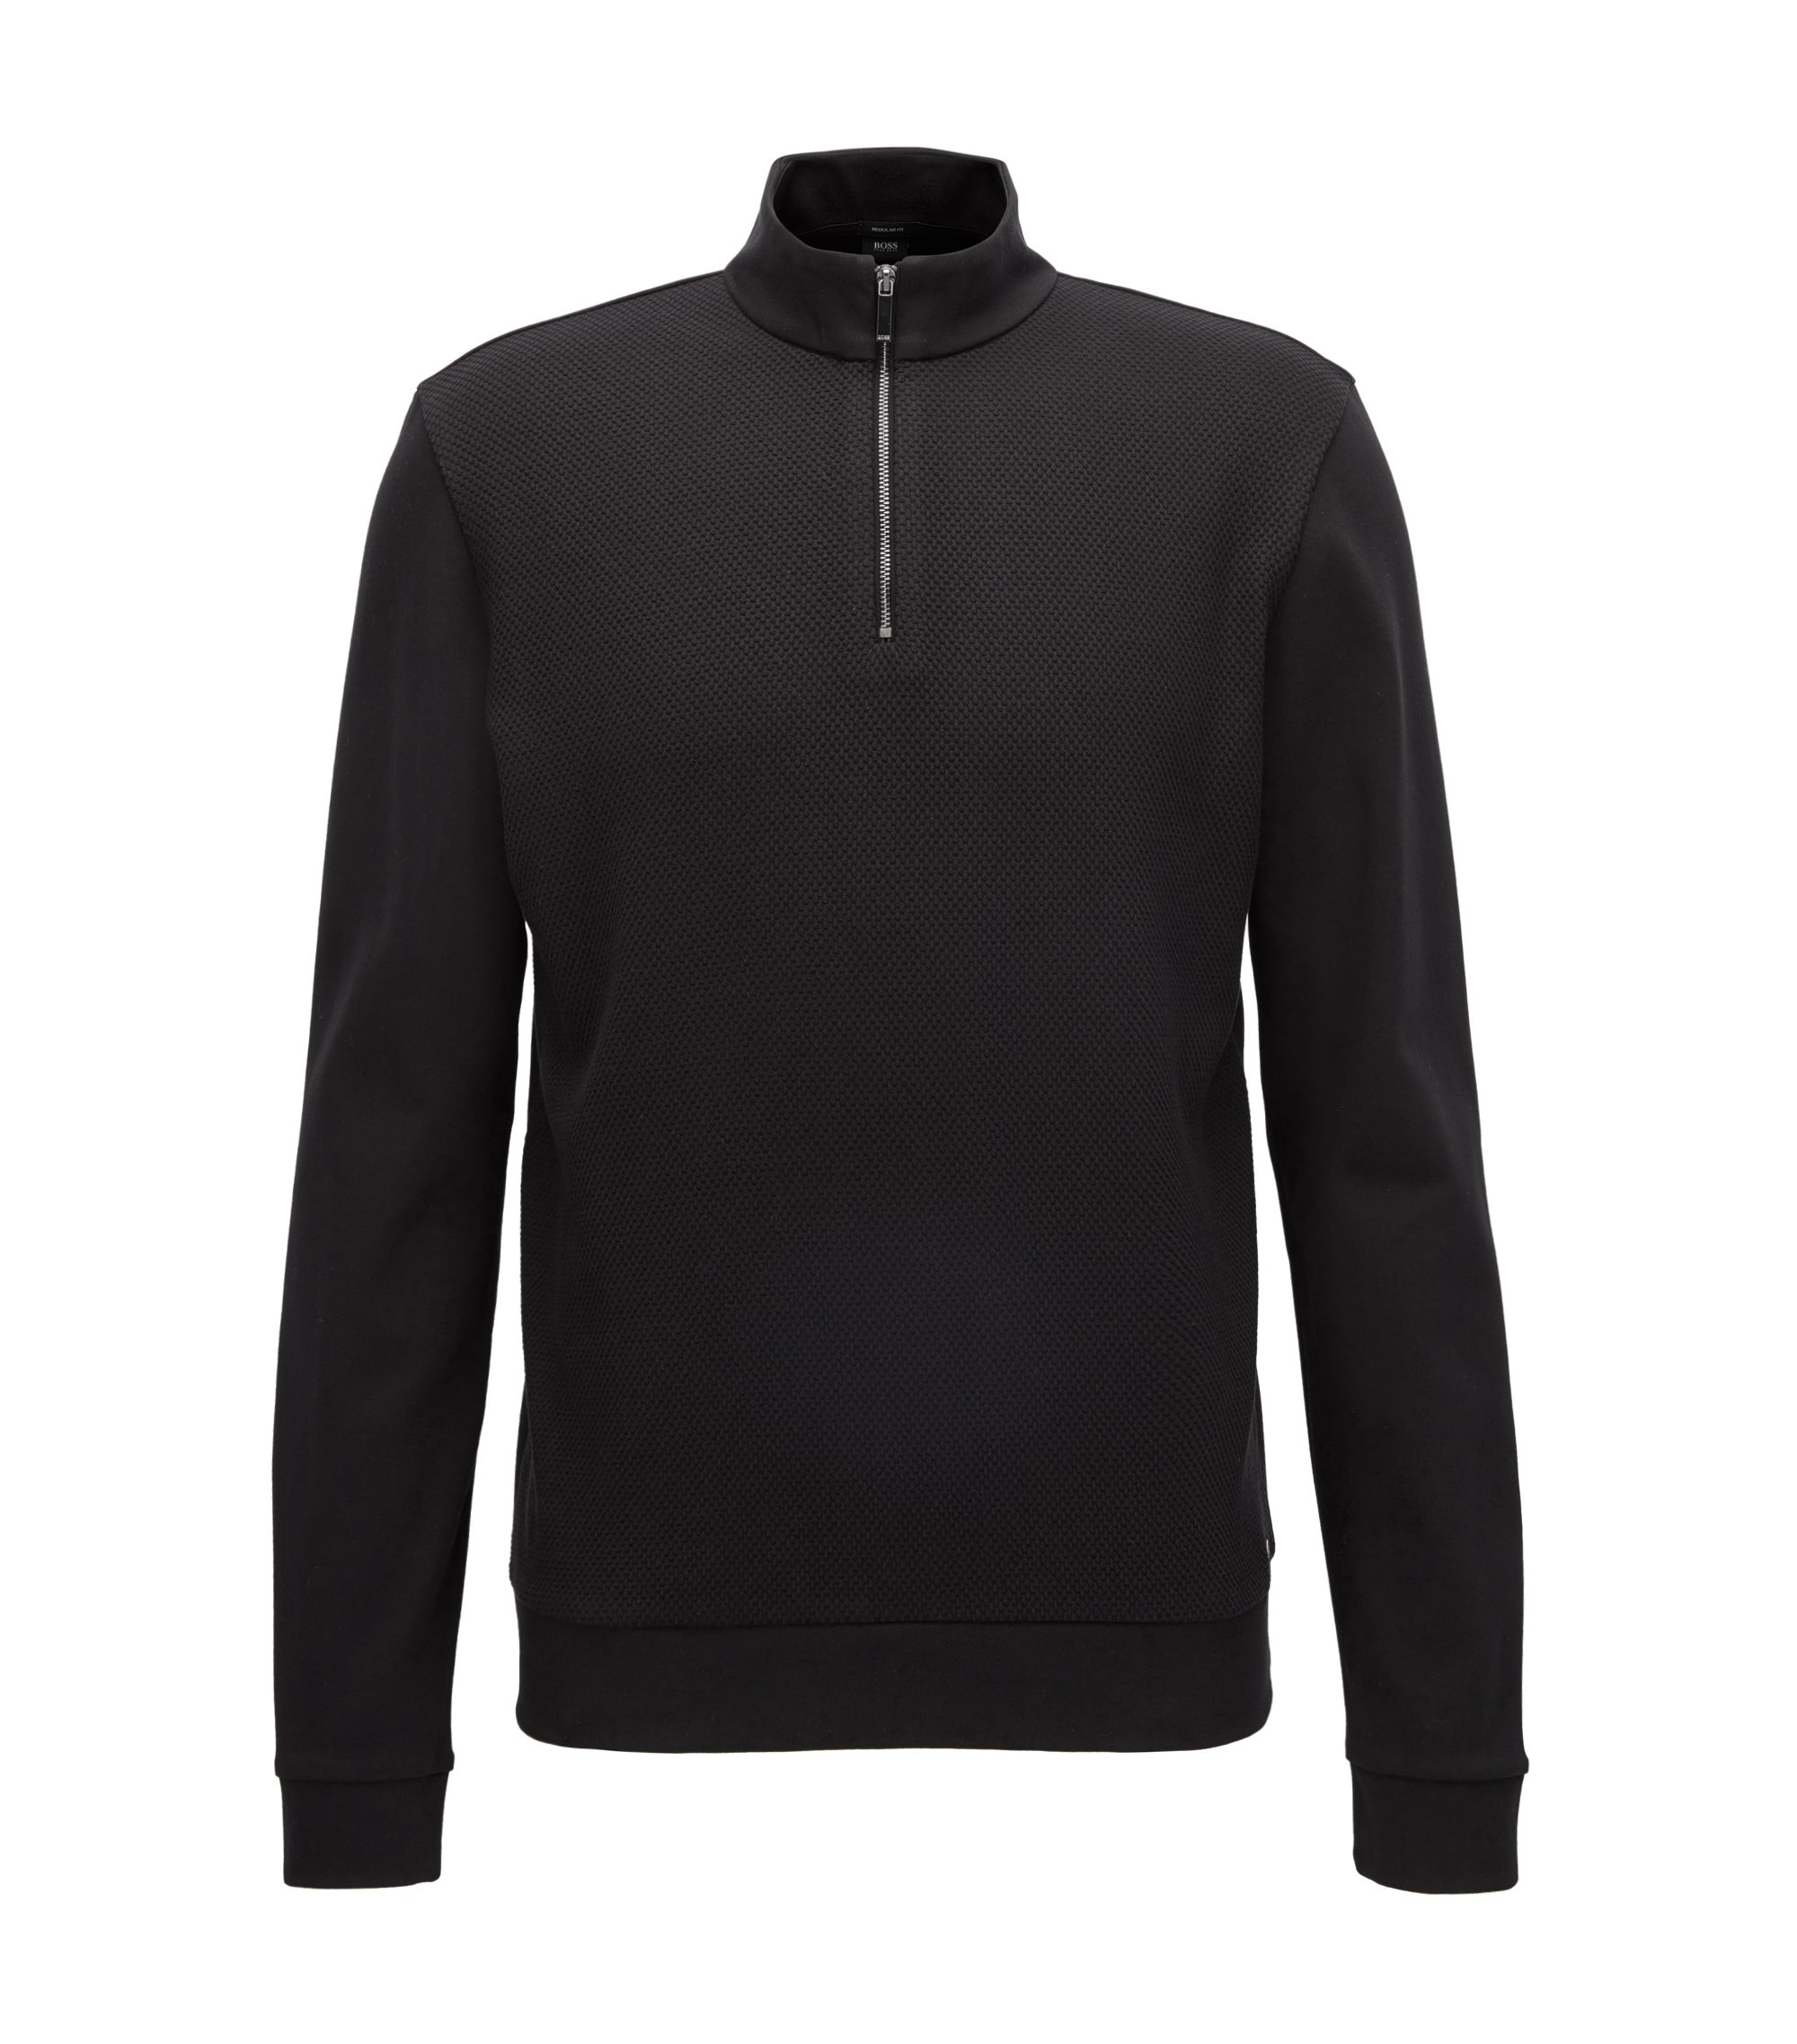 Cotton Birdseye Half-Zip Sweatshirt | Sidney, Black